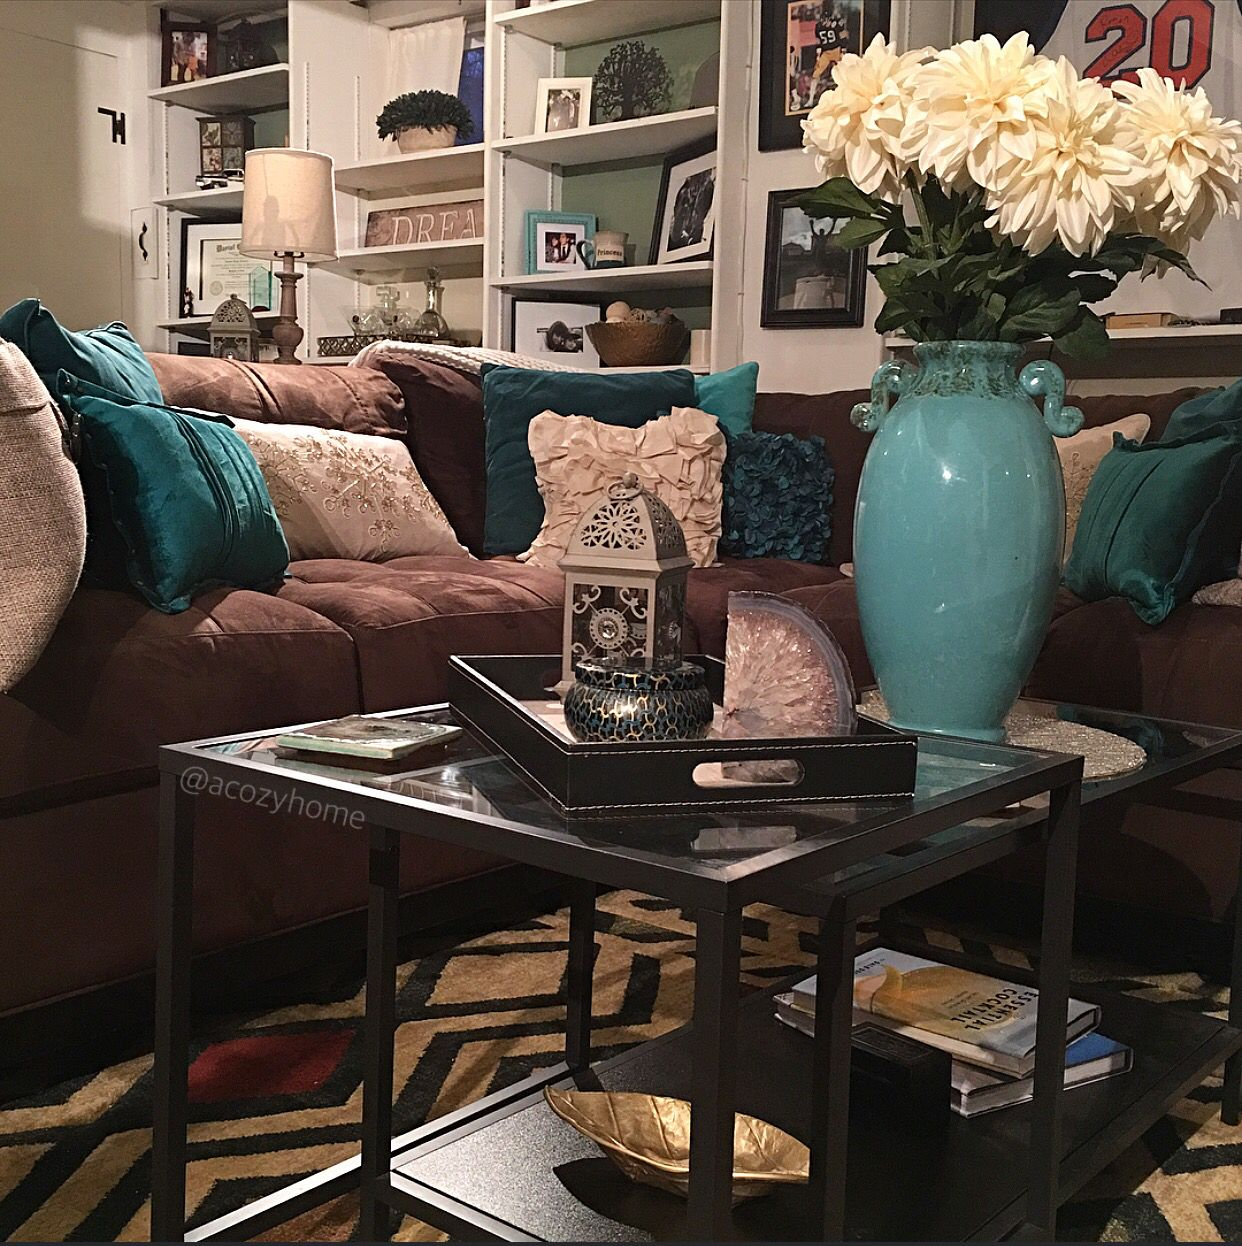 Living room colors with brown couch - Cozy Brown Couch With Teal Accents Turquoise And Brown Built In Shelves Ikea Nesting Tablesaccents Turquoiseliving Room Colorshome